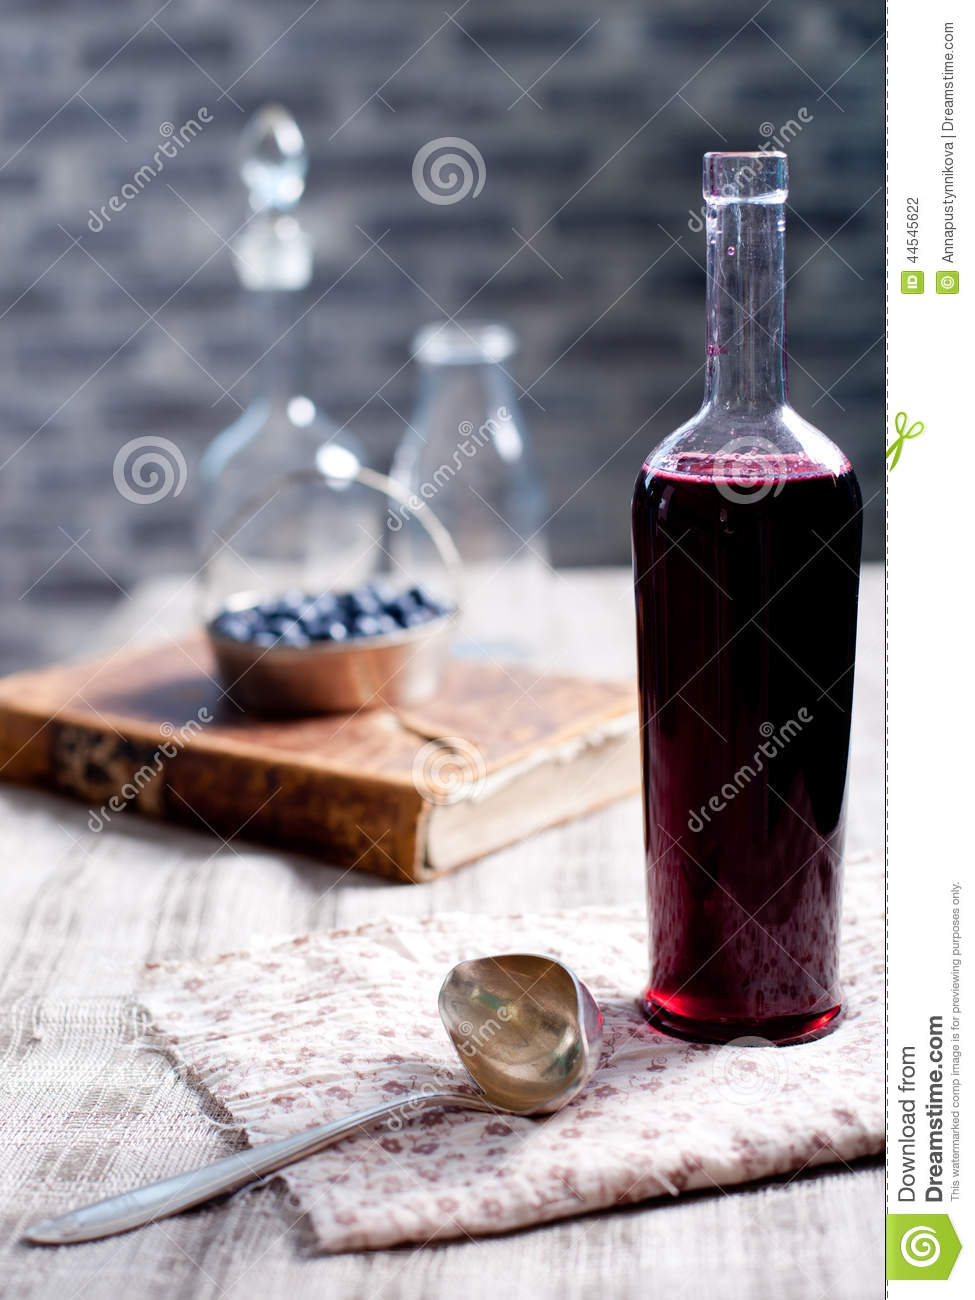 vieille bouteille de vin avec du vinaigre fait maison de baie photo stock image du ferm. Black Bedroom Furniture Sets. Home Design Ideas